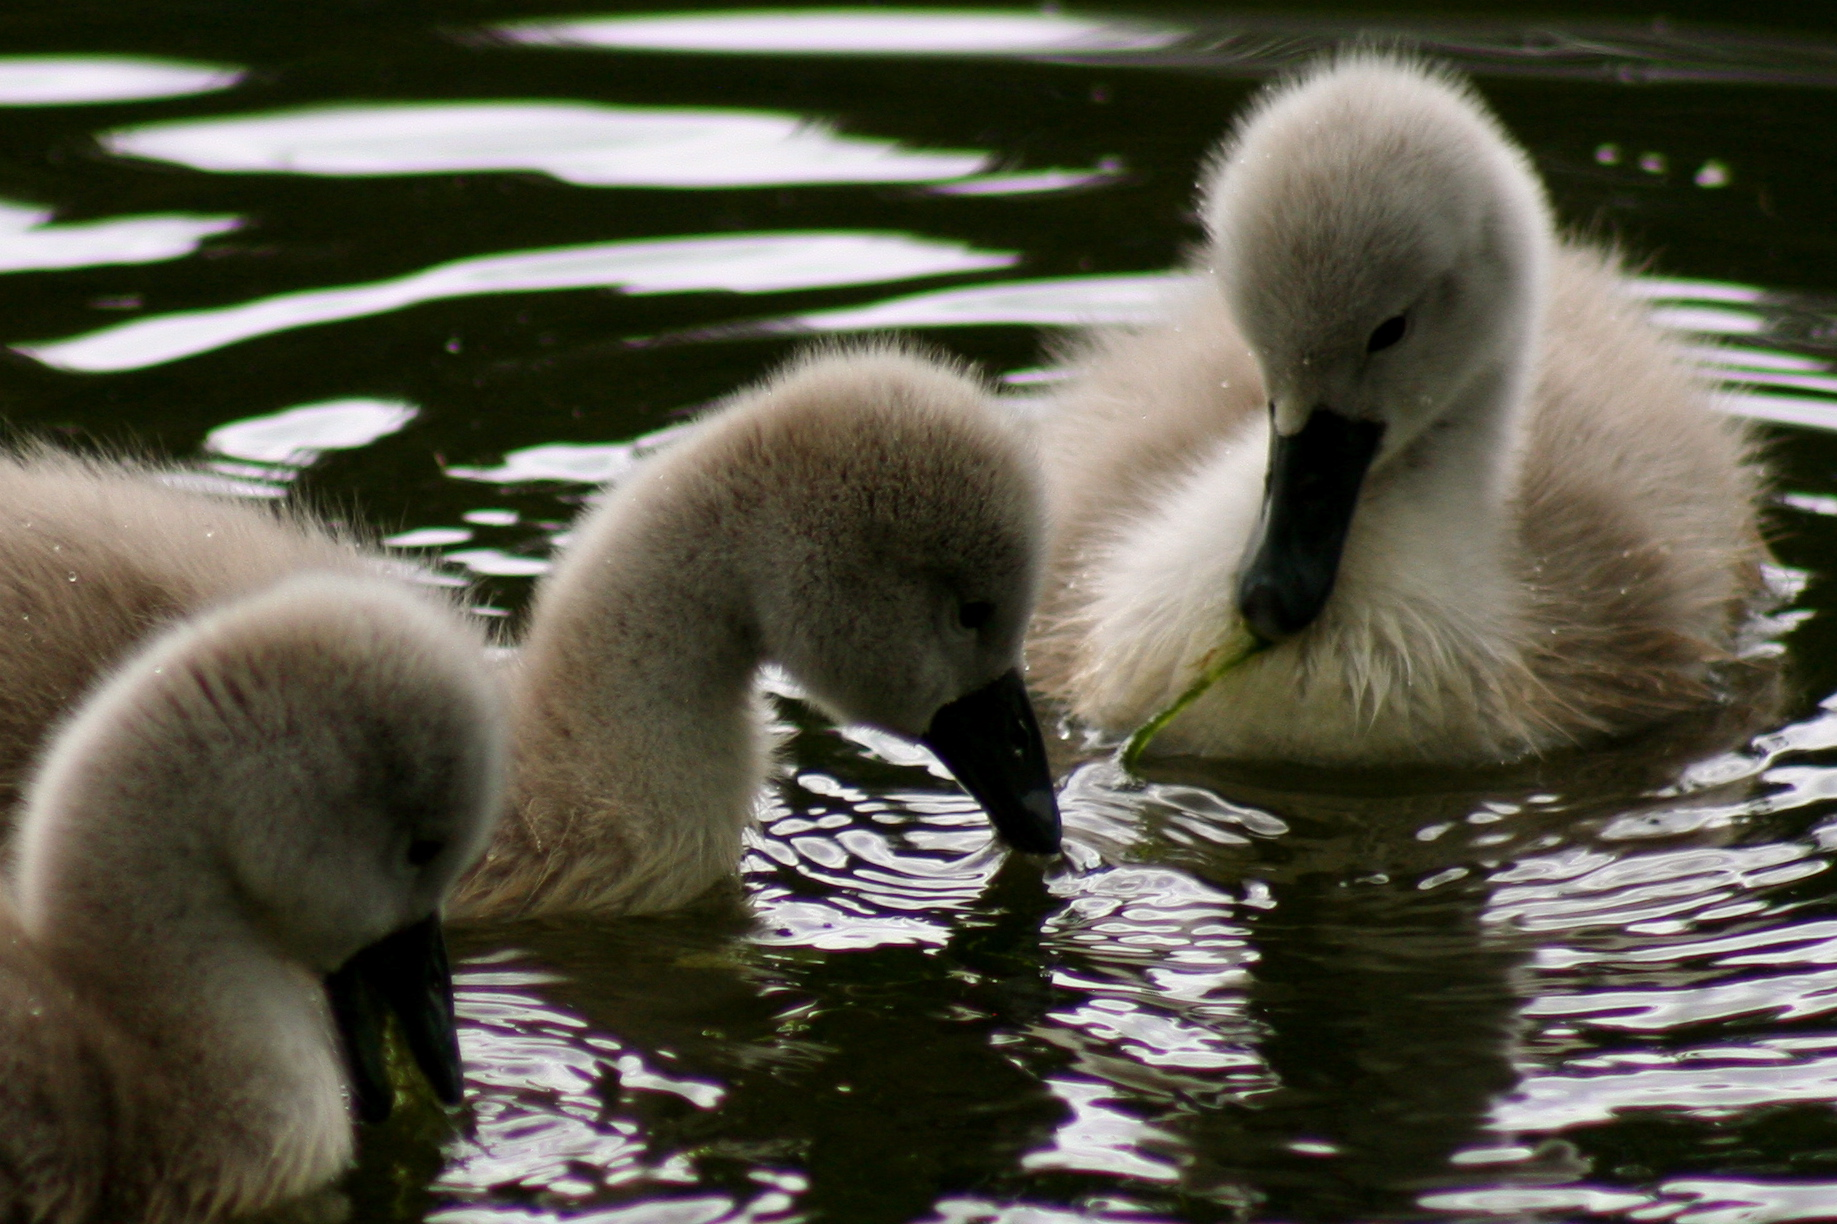 File:Photojenni - Cute baby swan (by).jpg - Wikimedia Commons